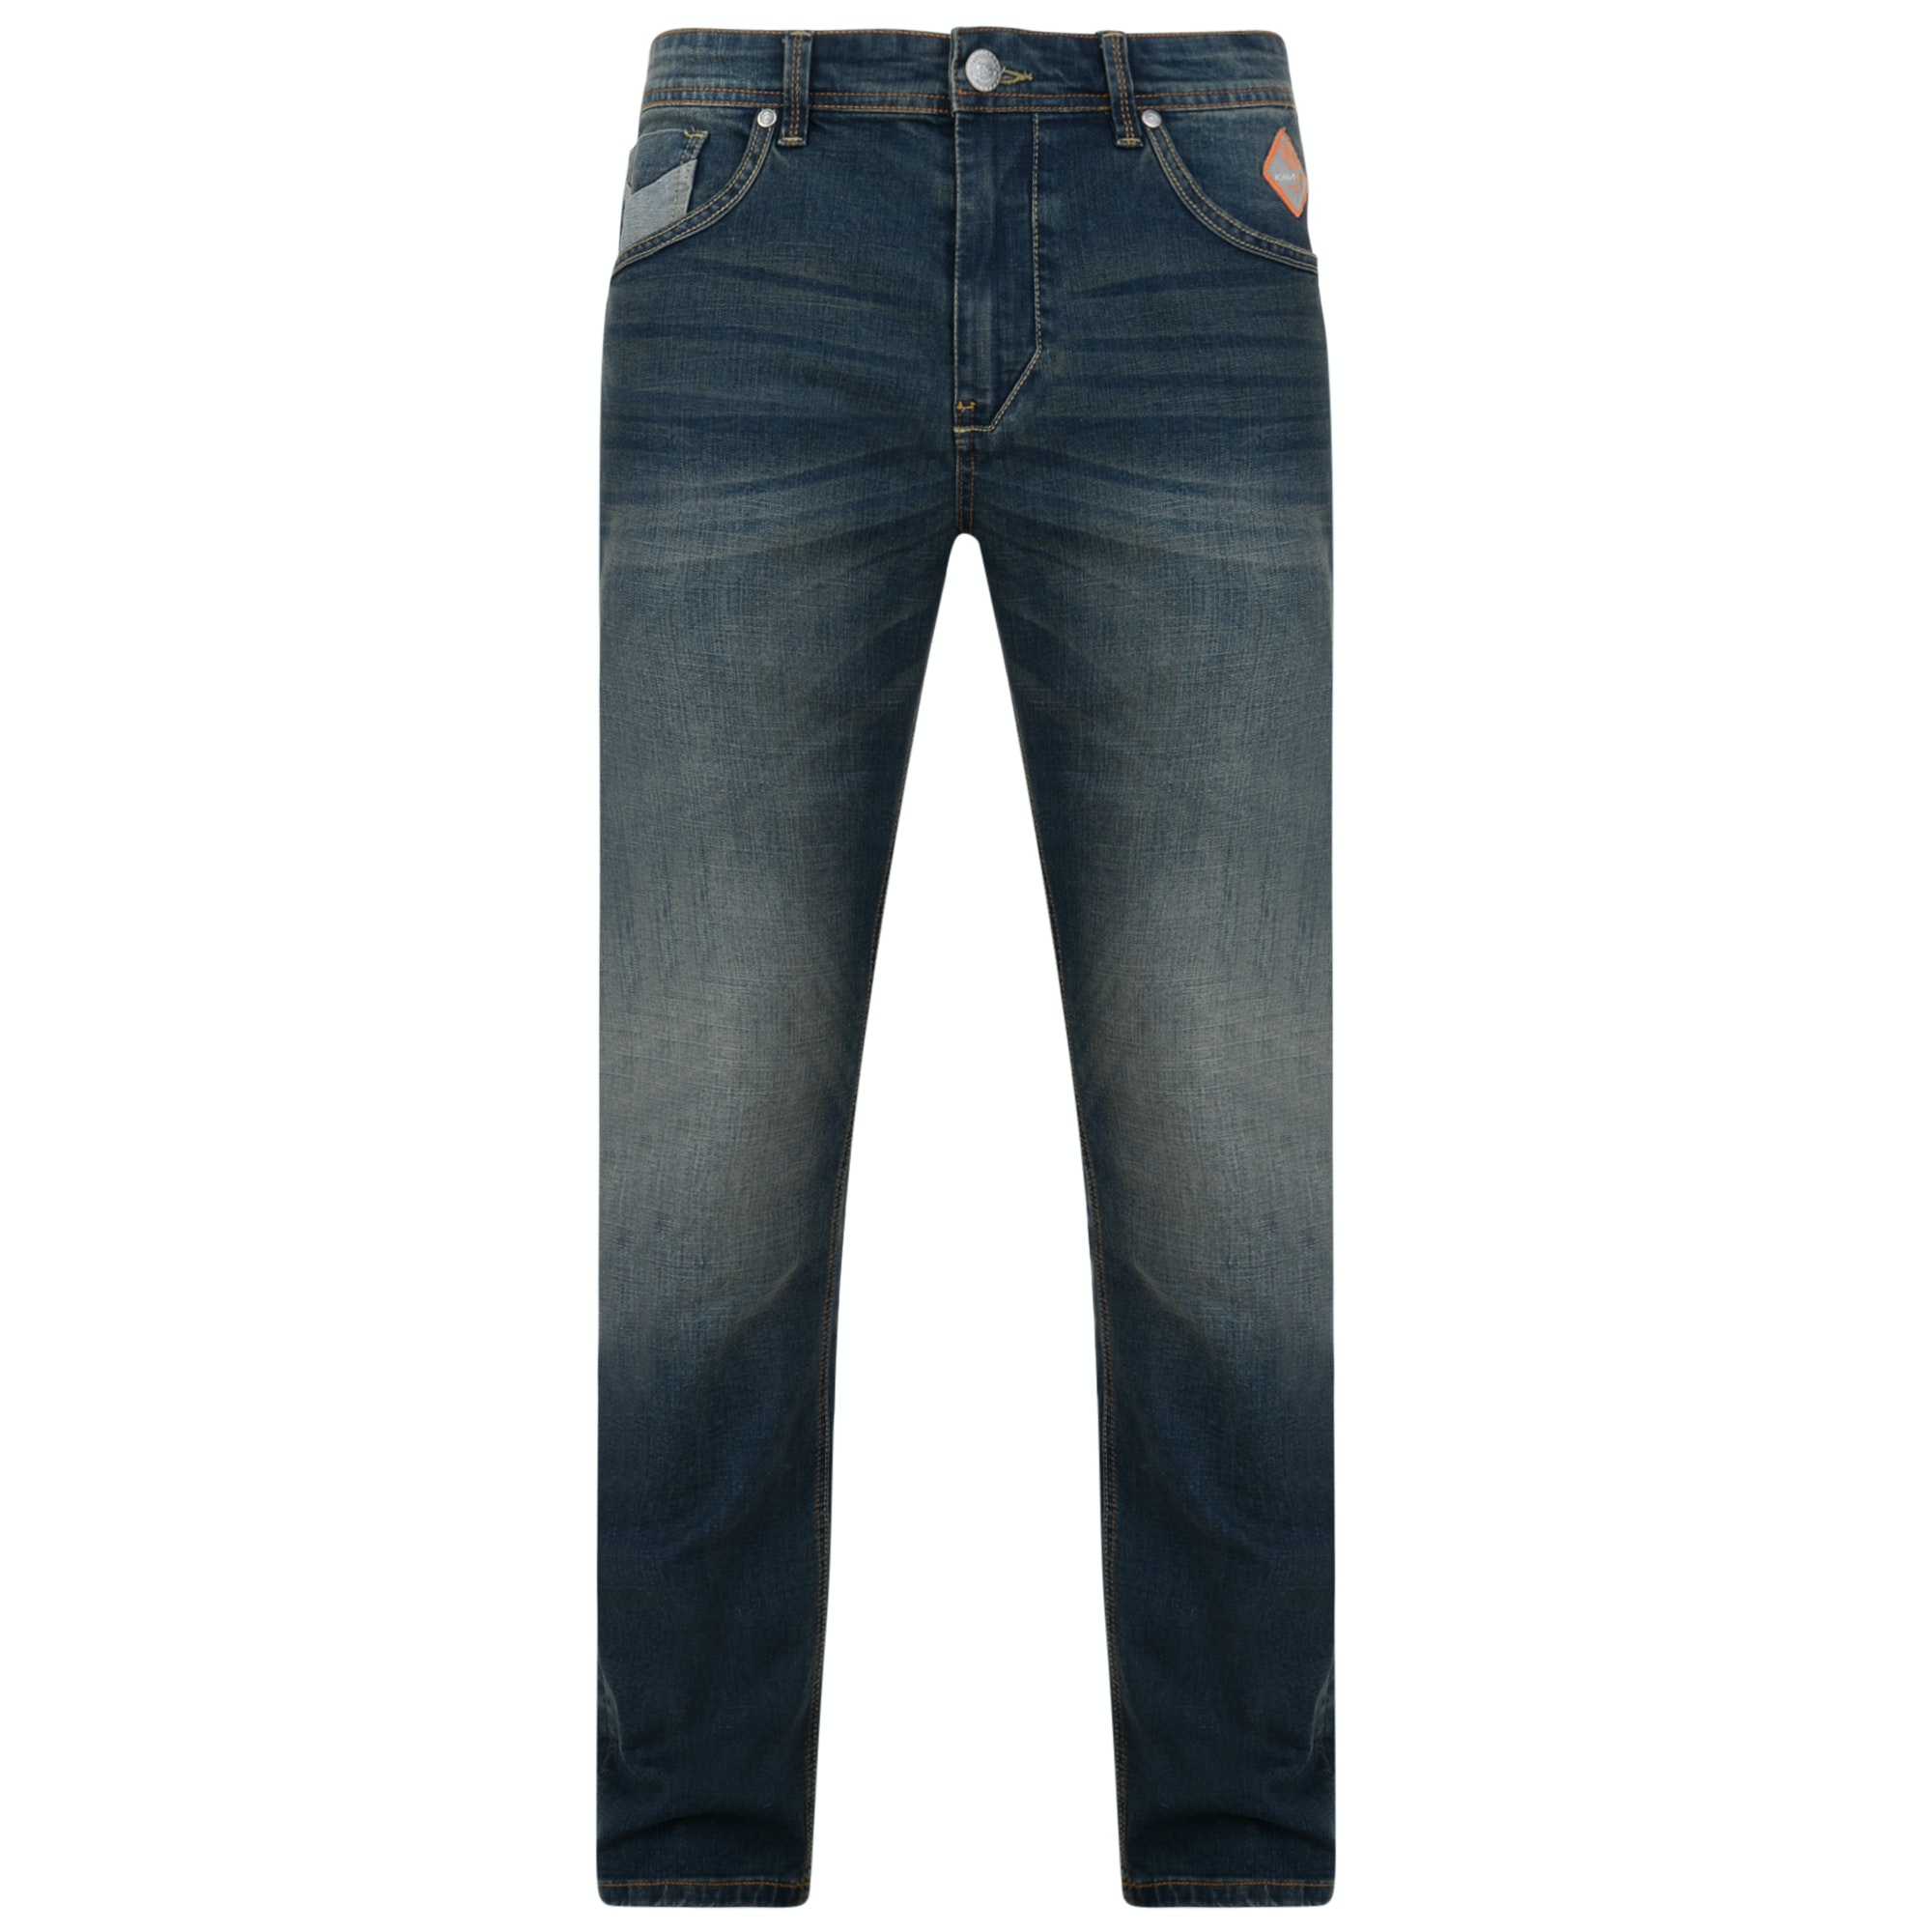 KAM Ruben Fashion Jeans Blue Tall